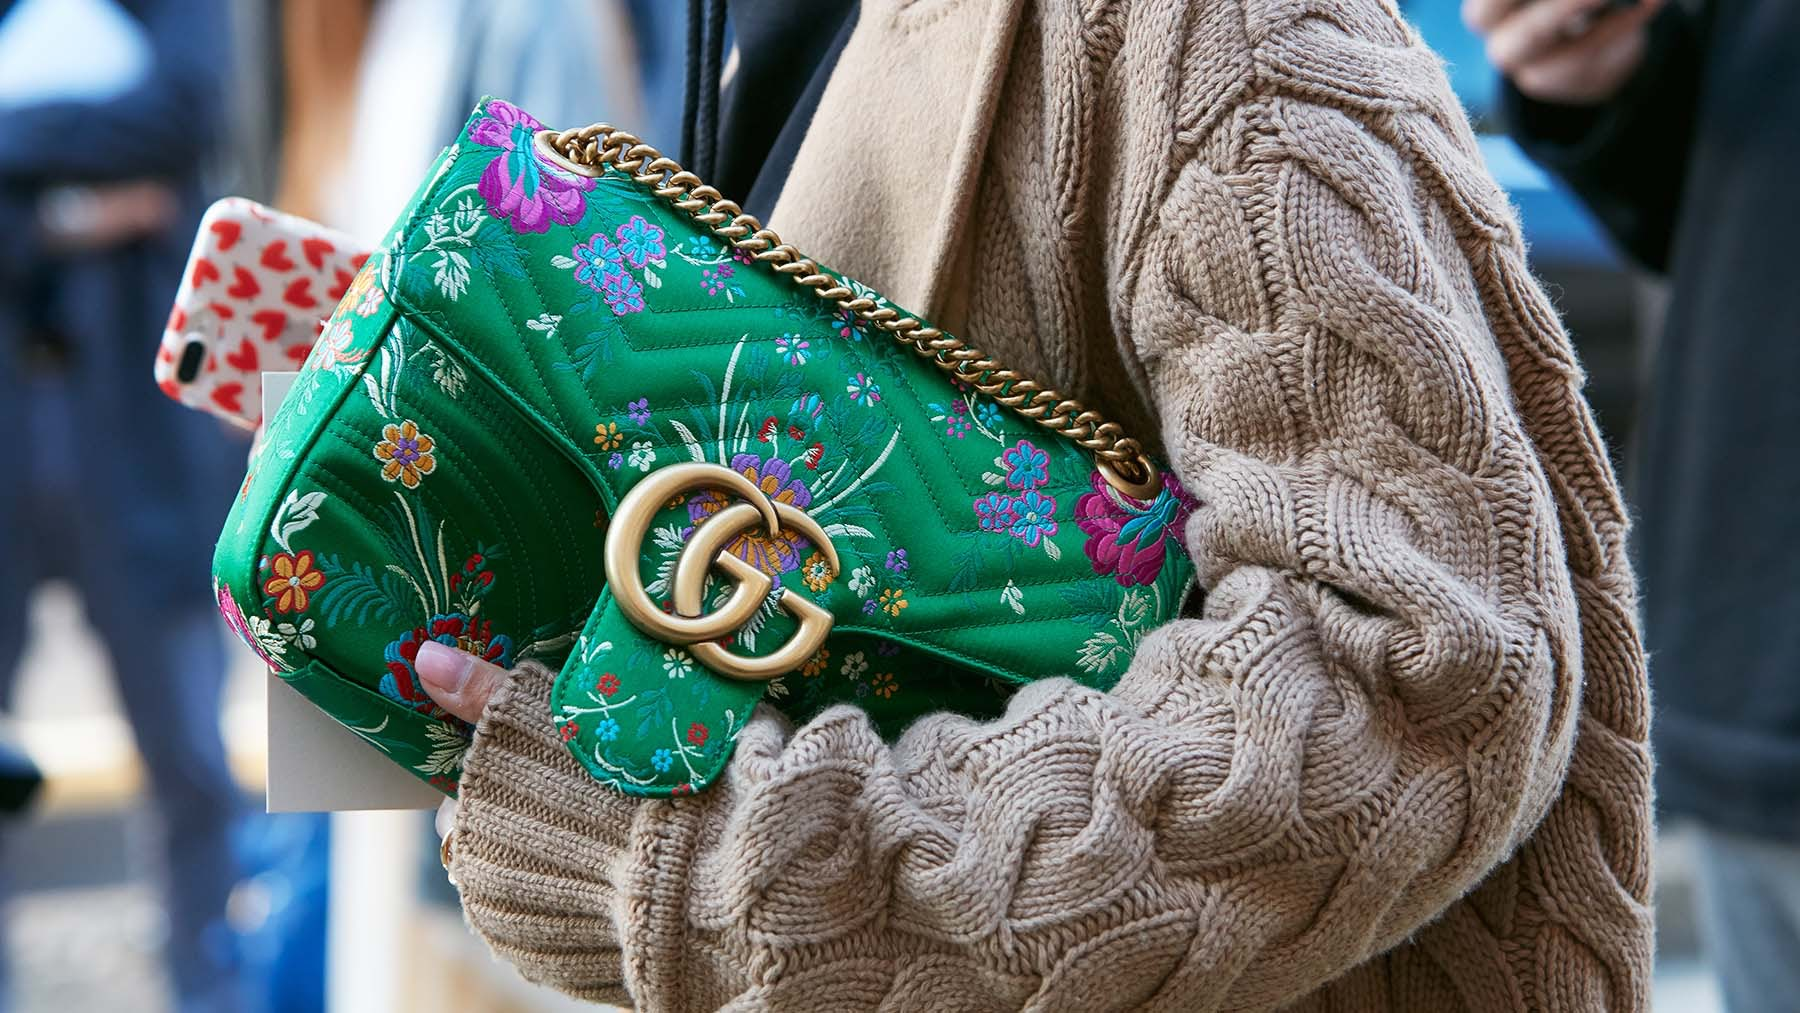 Gucci handbag | Source: Shutterstock